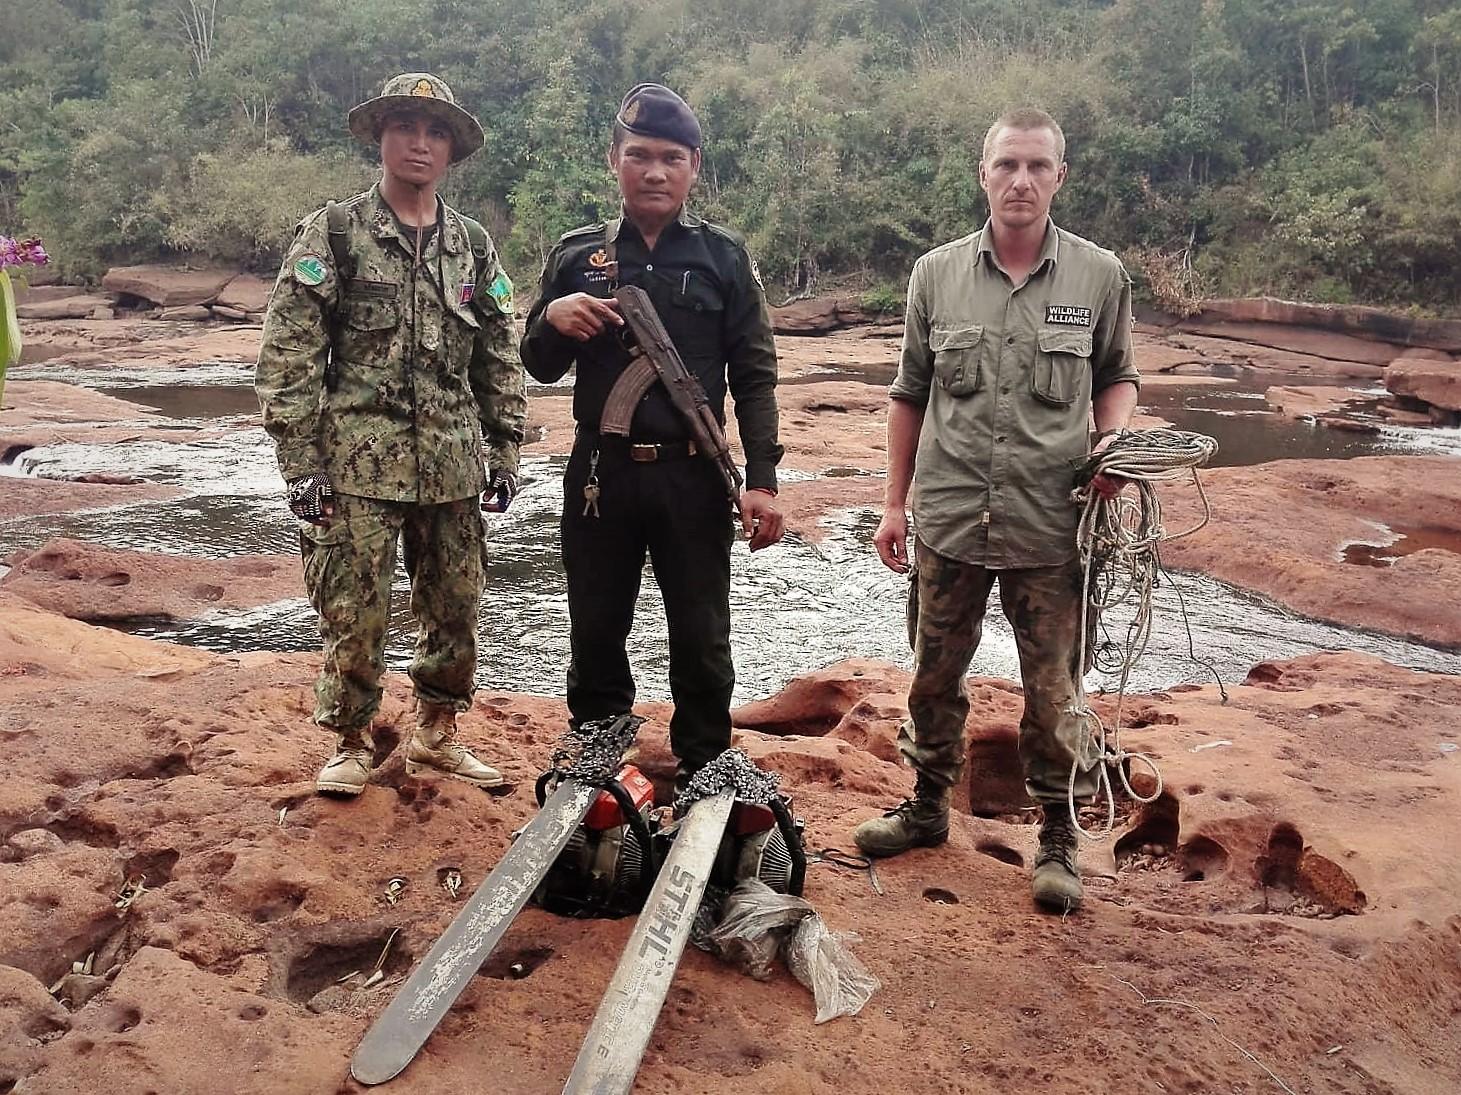 gibbon station long patrol Gibbon Station rangers' deep wilderness patrol illegal chainsaws in Cambodia